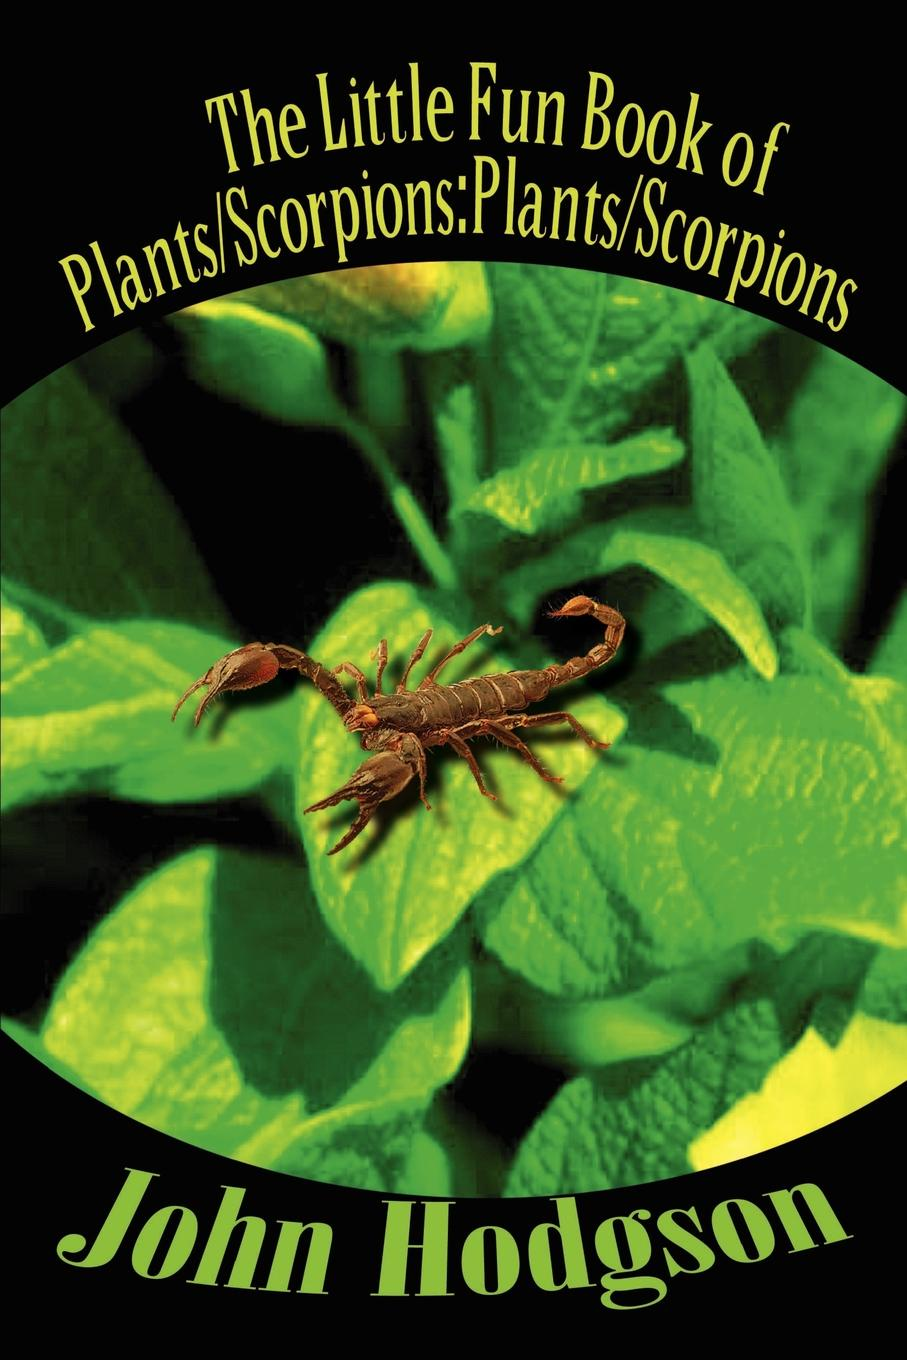 John Hodgson The Little Fun Book of Plants/Scorpions. Plants/Scorpions